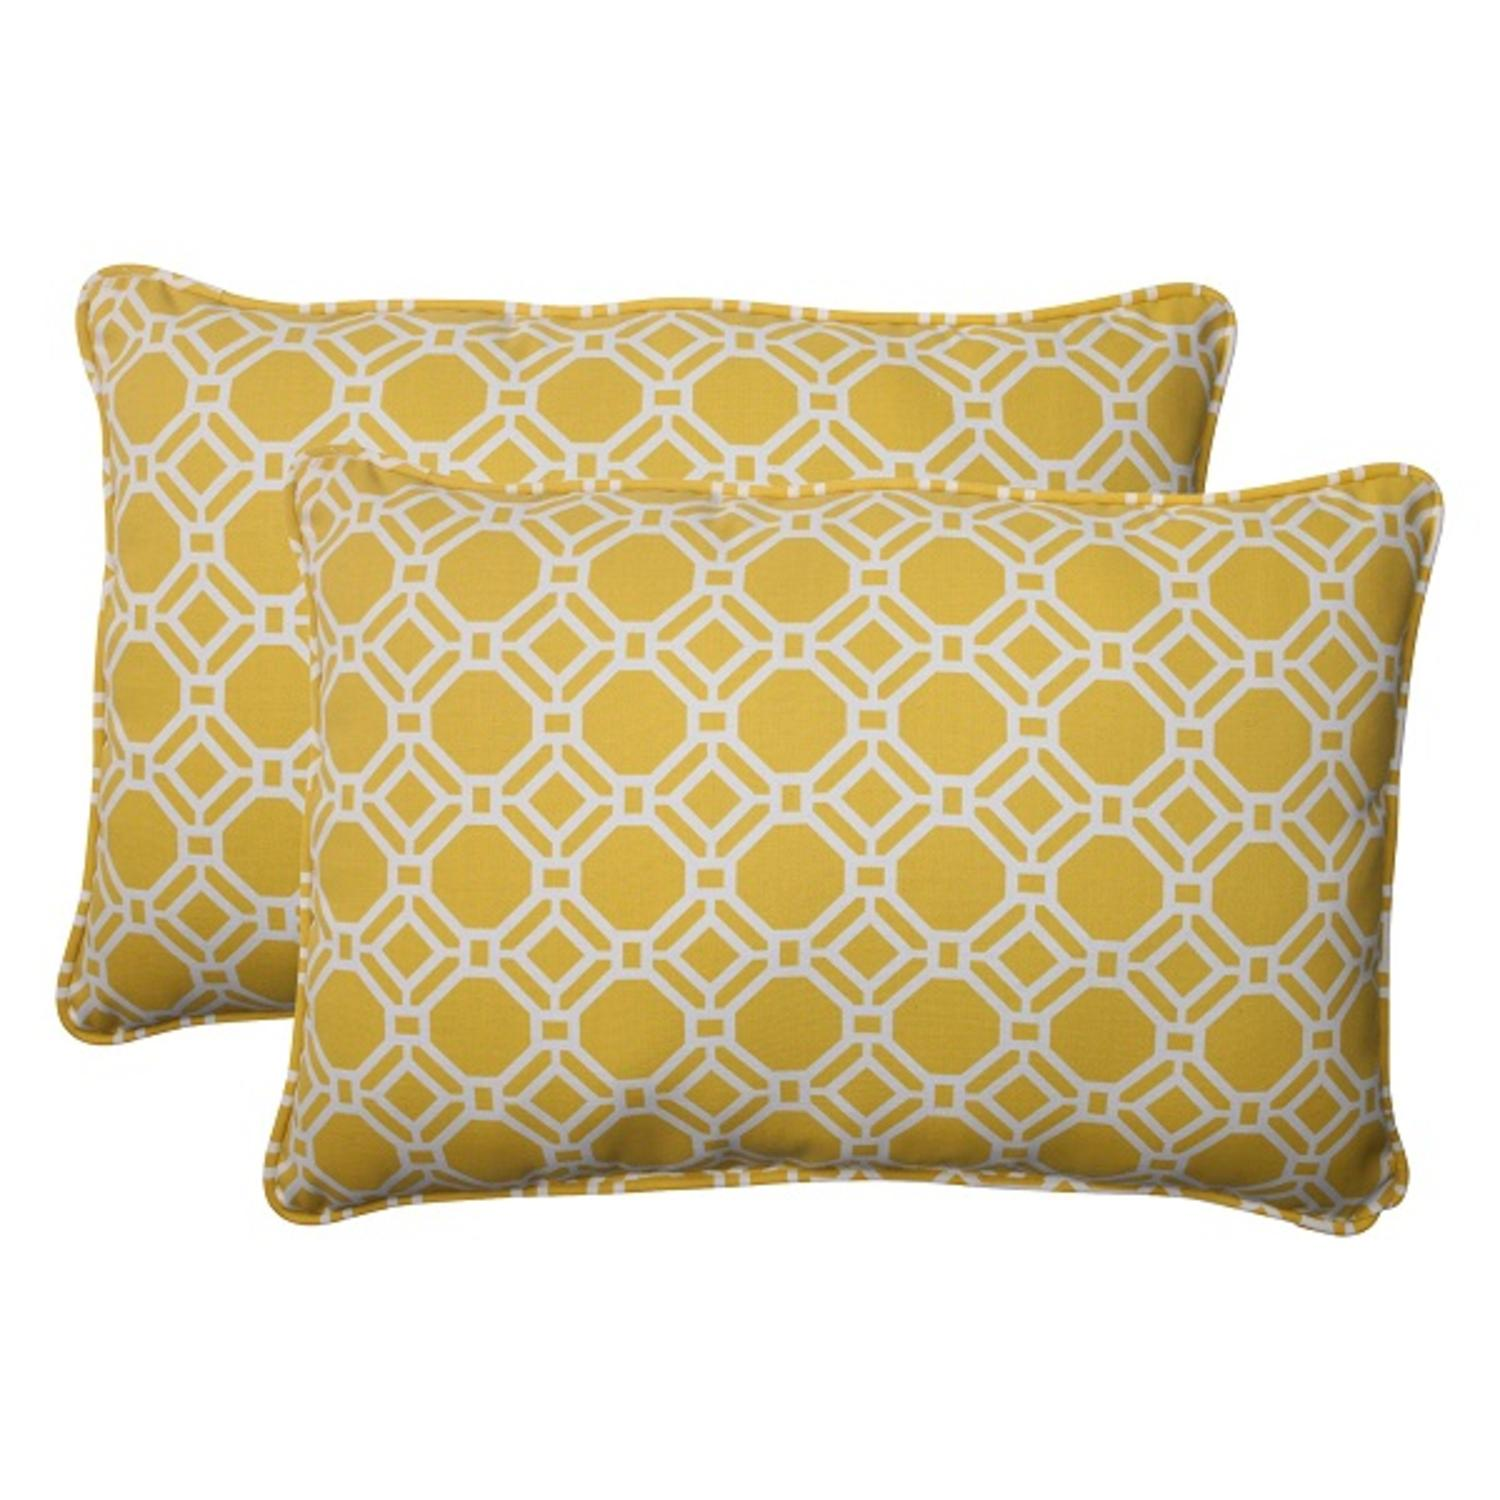 Set of 2 Sunny Yellow and White Rectangular Outdoor Patio Throw Pillows 24.5""